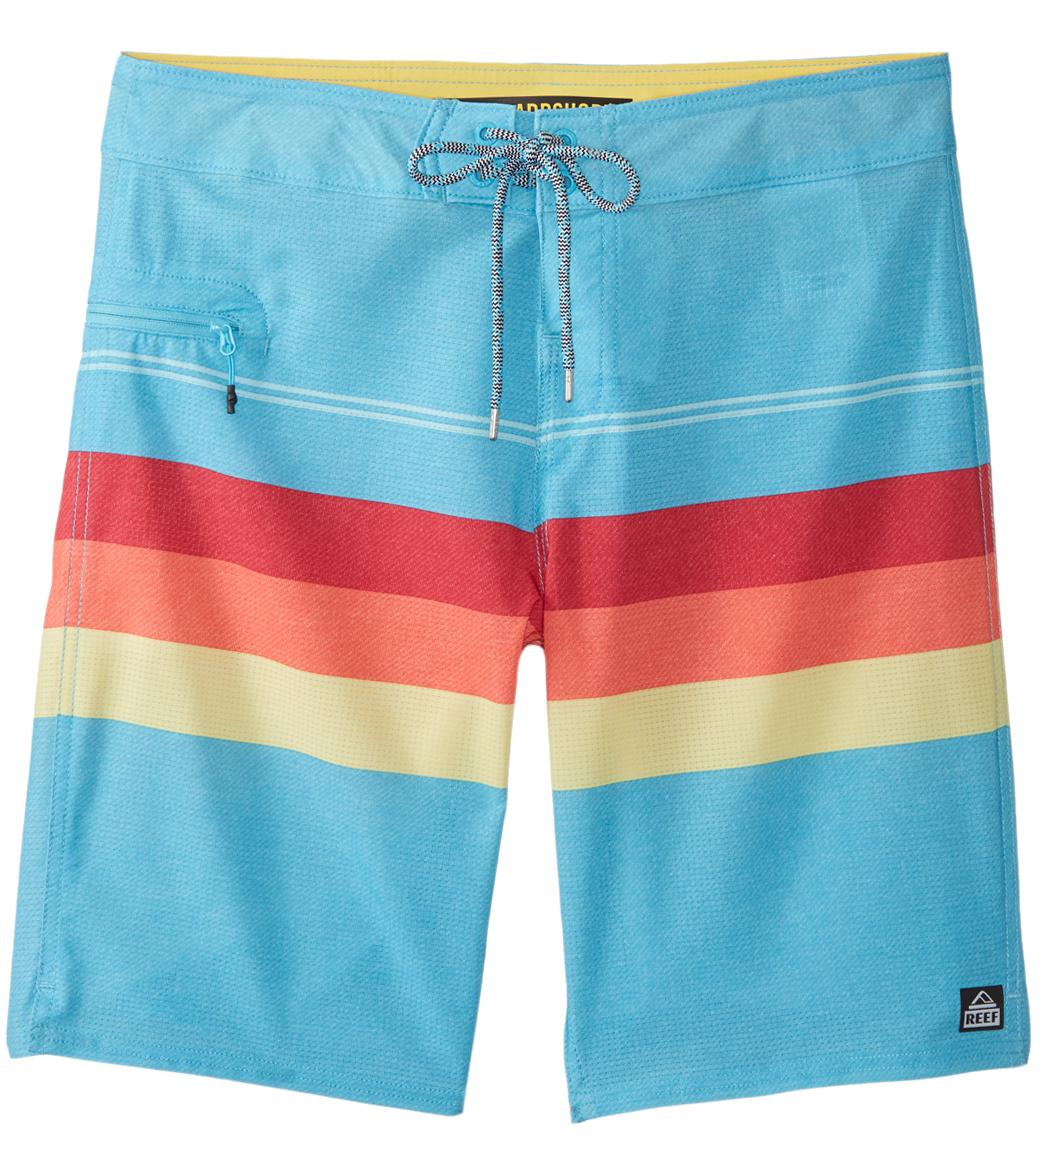 719b72f30eb Reef Men's Peeler Boardshort at SwimOutlet.com - Free Shipping